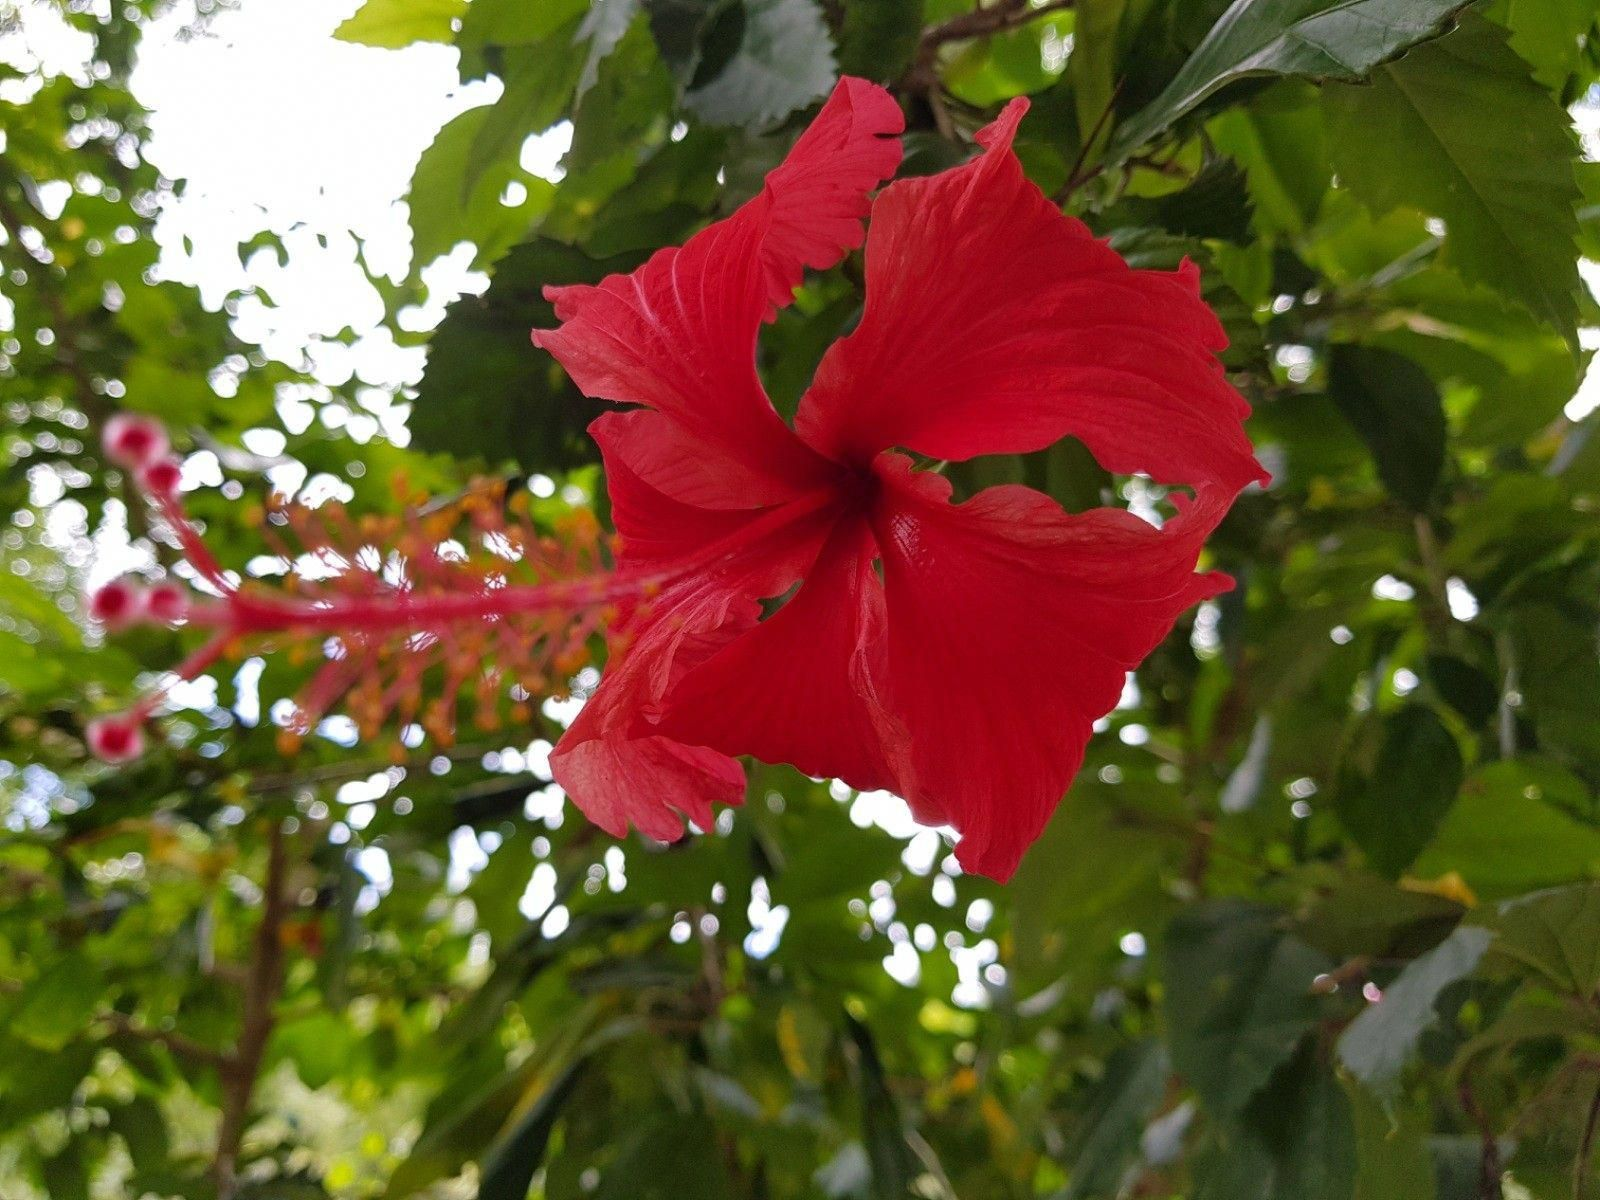 Rich Red Hibiscus Flower From Philippines A Flowering Plant That Comes In Many Different Colours Famous In Tropical Countri Hibiscus Flowers Flowers Hibiscus